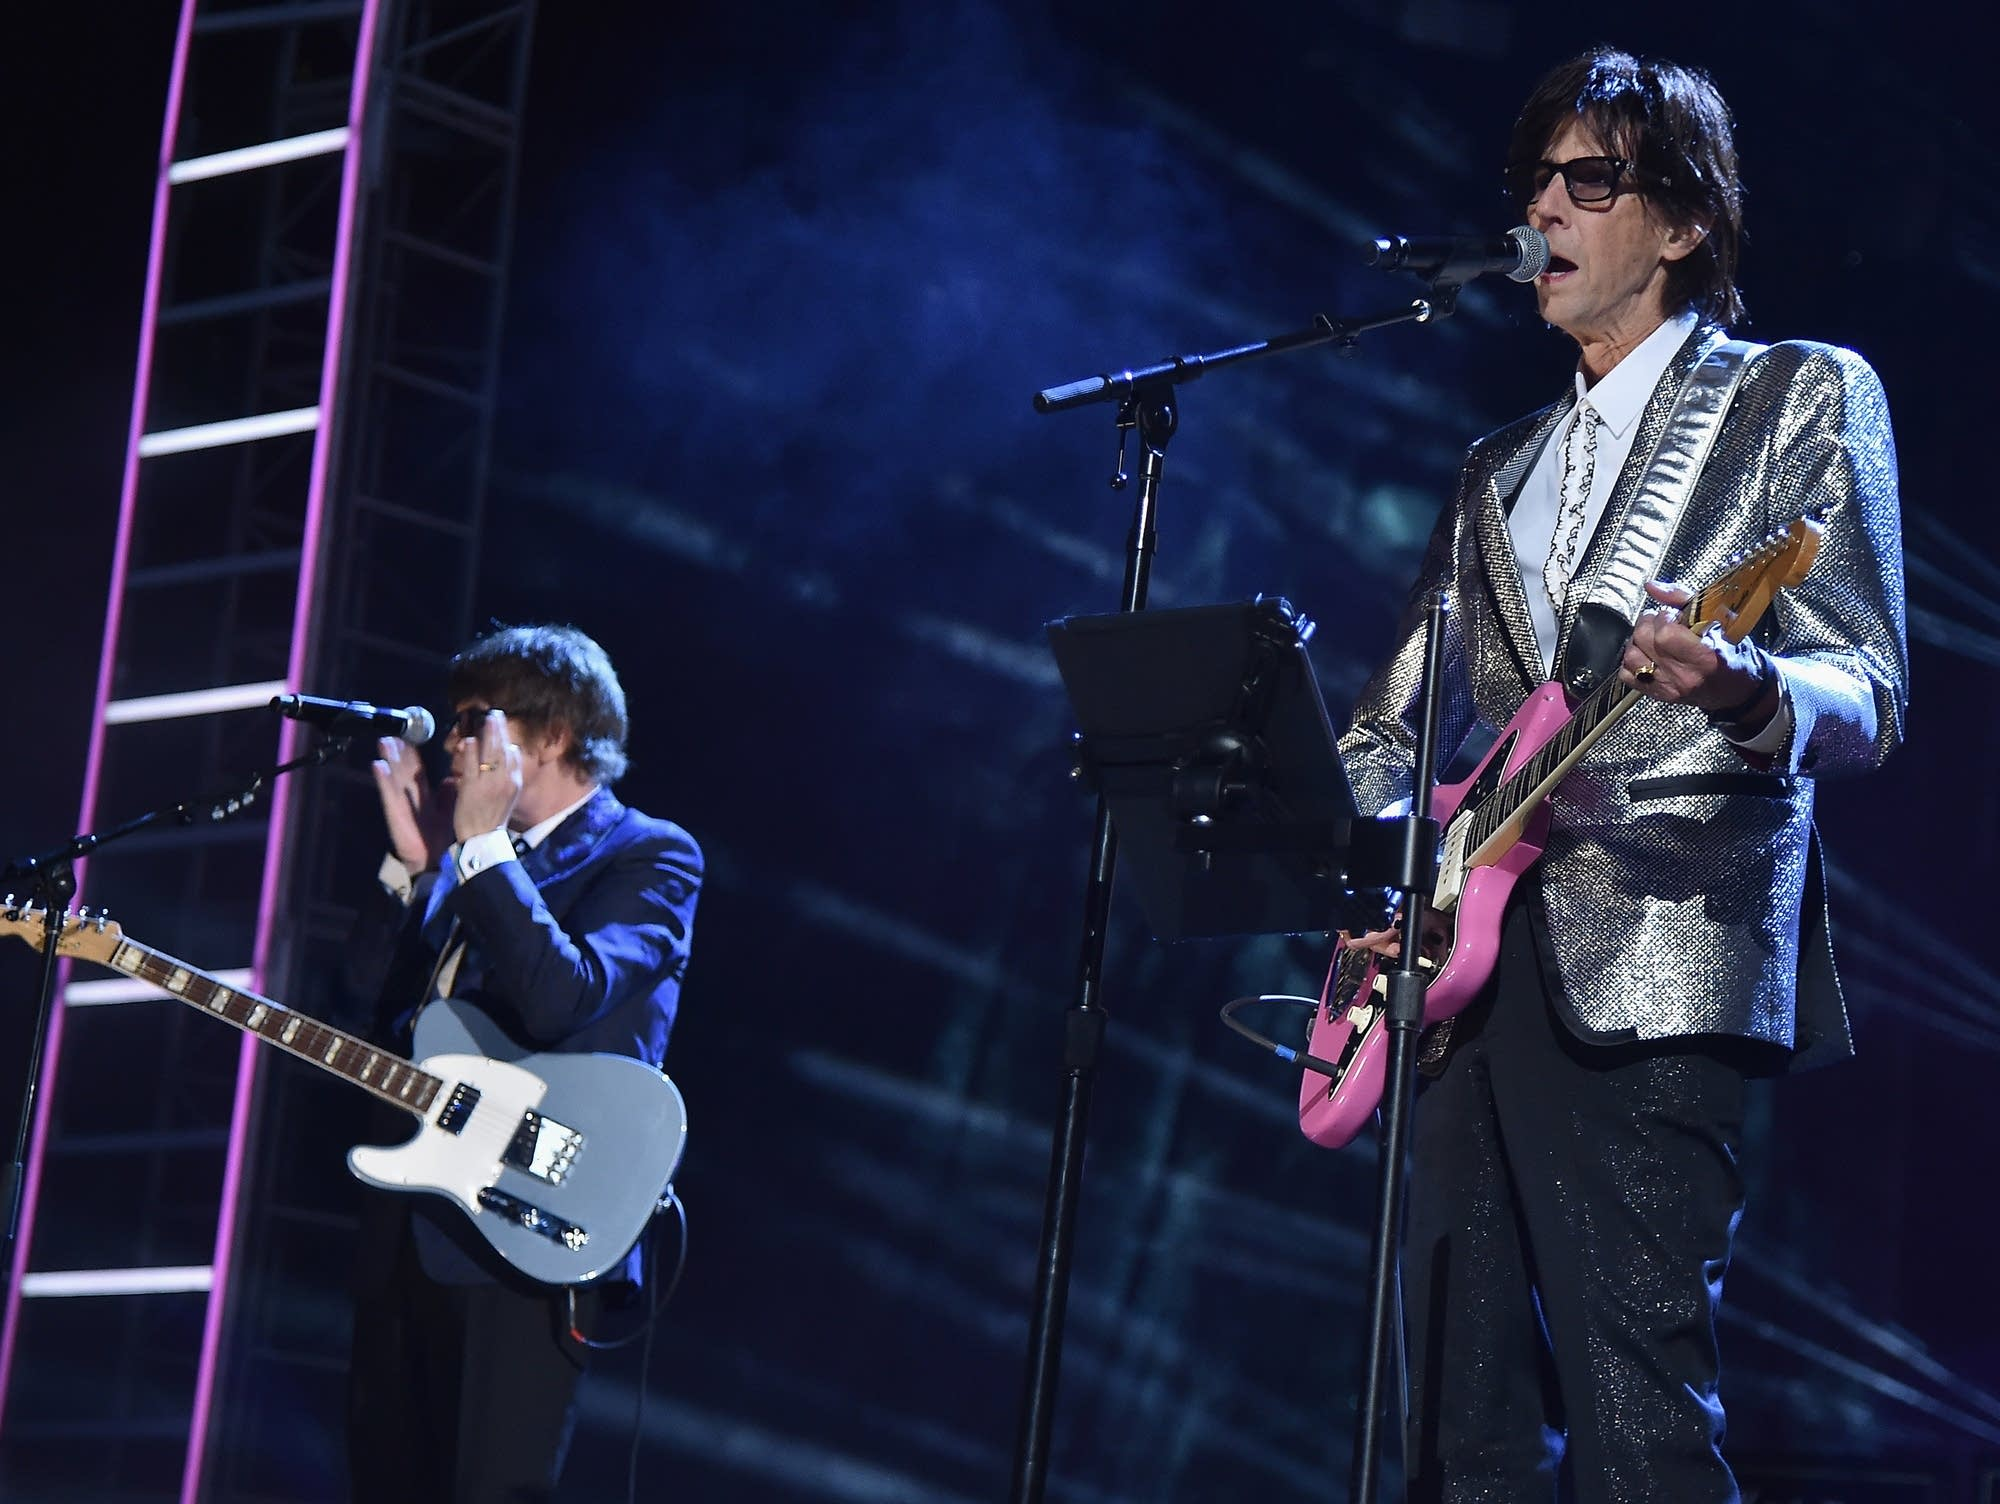 Ric Ocasek of the Cars performs at the Rock and Roll Hall of Fame.